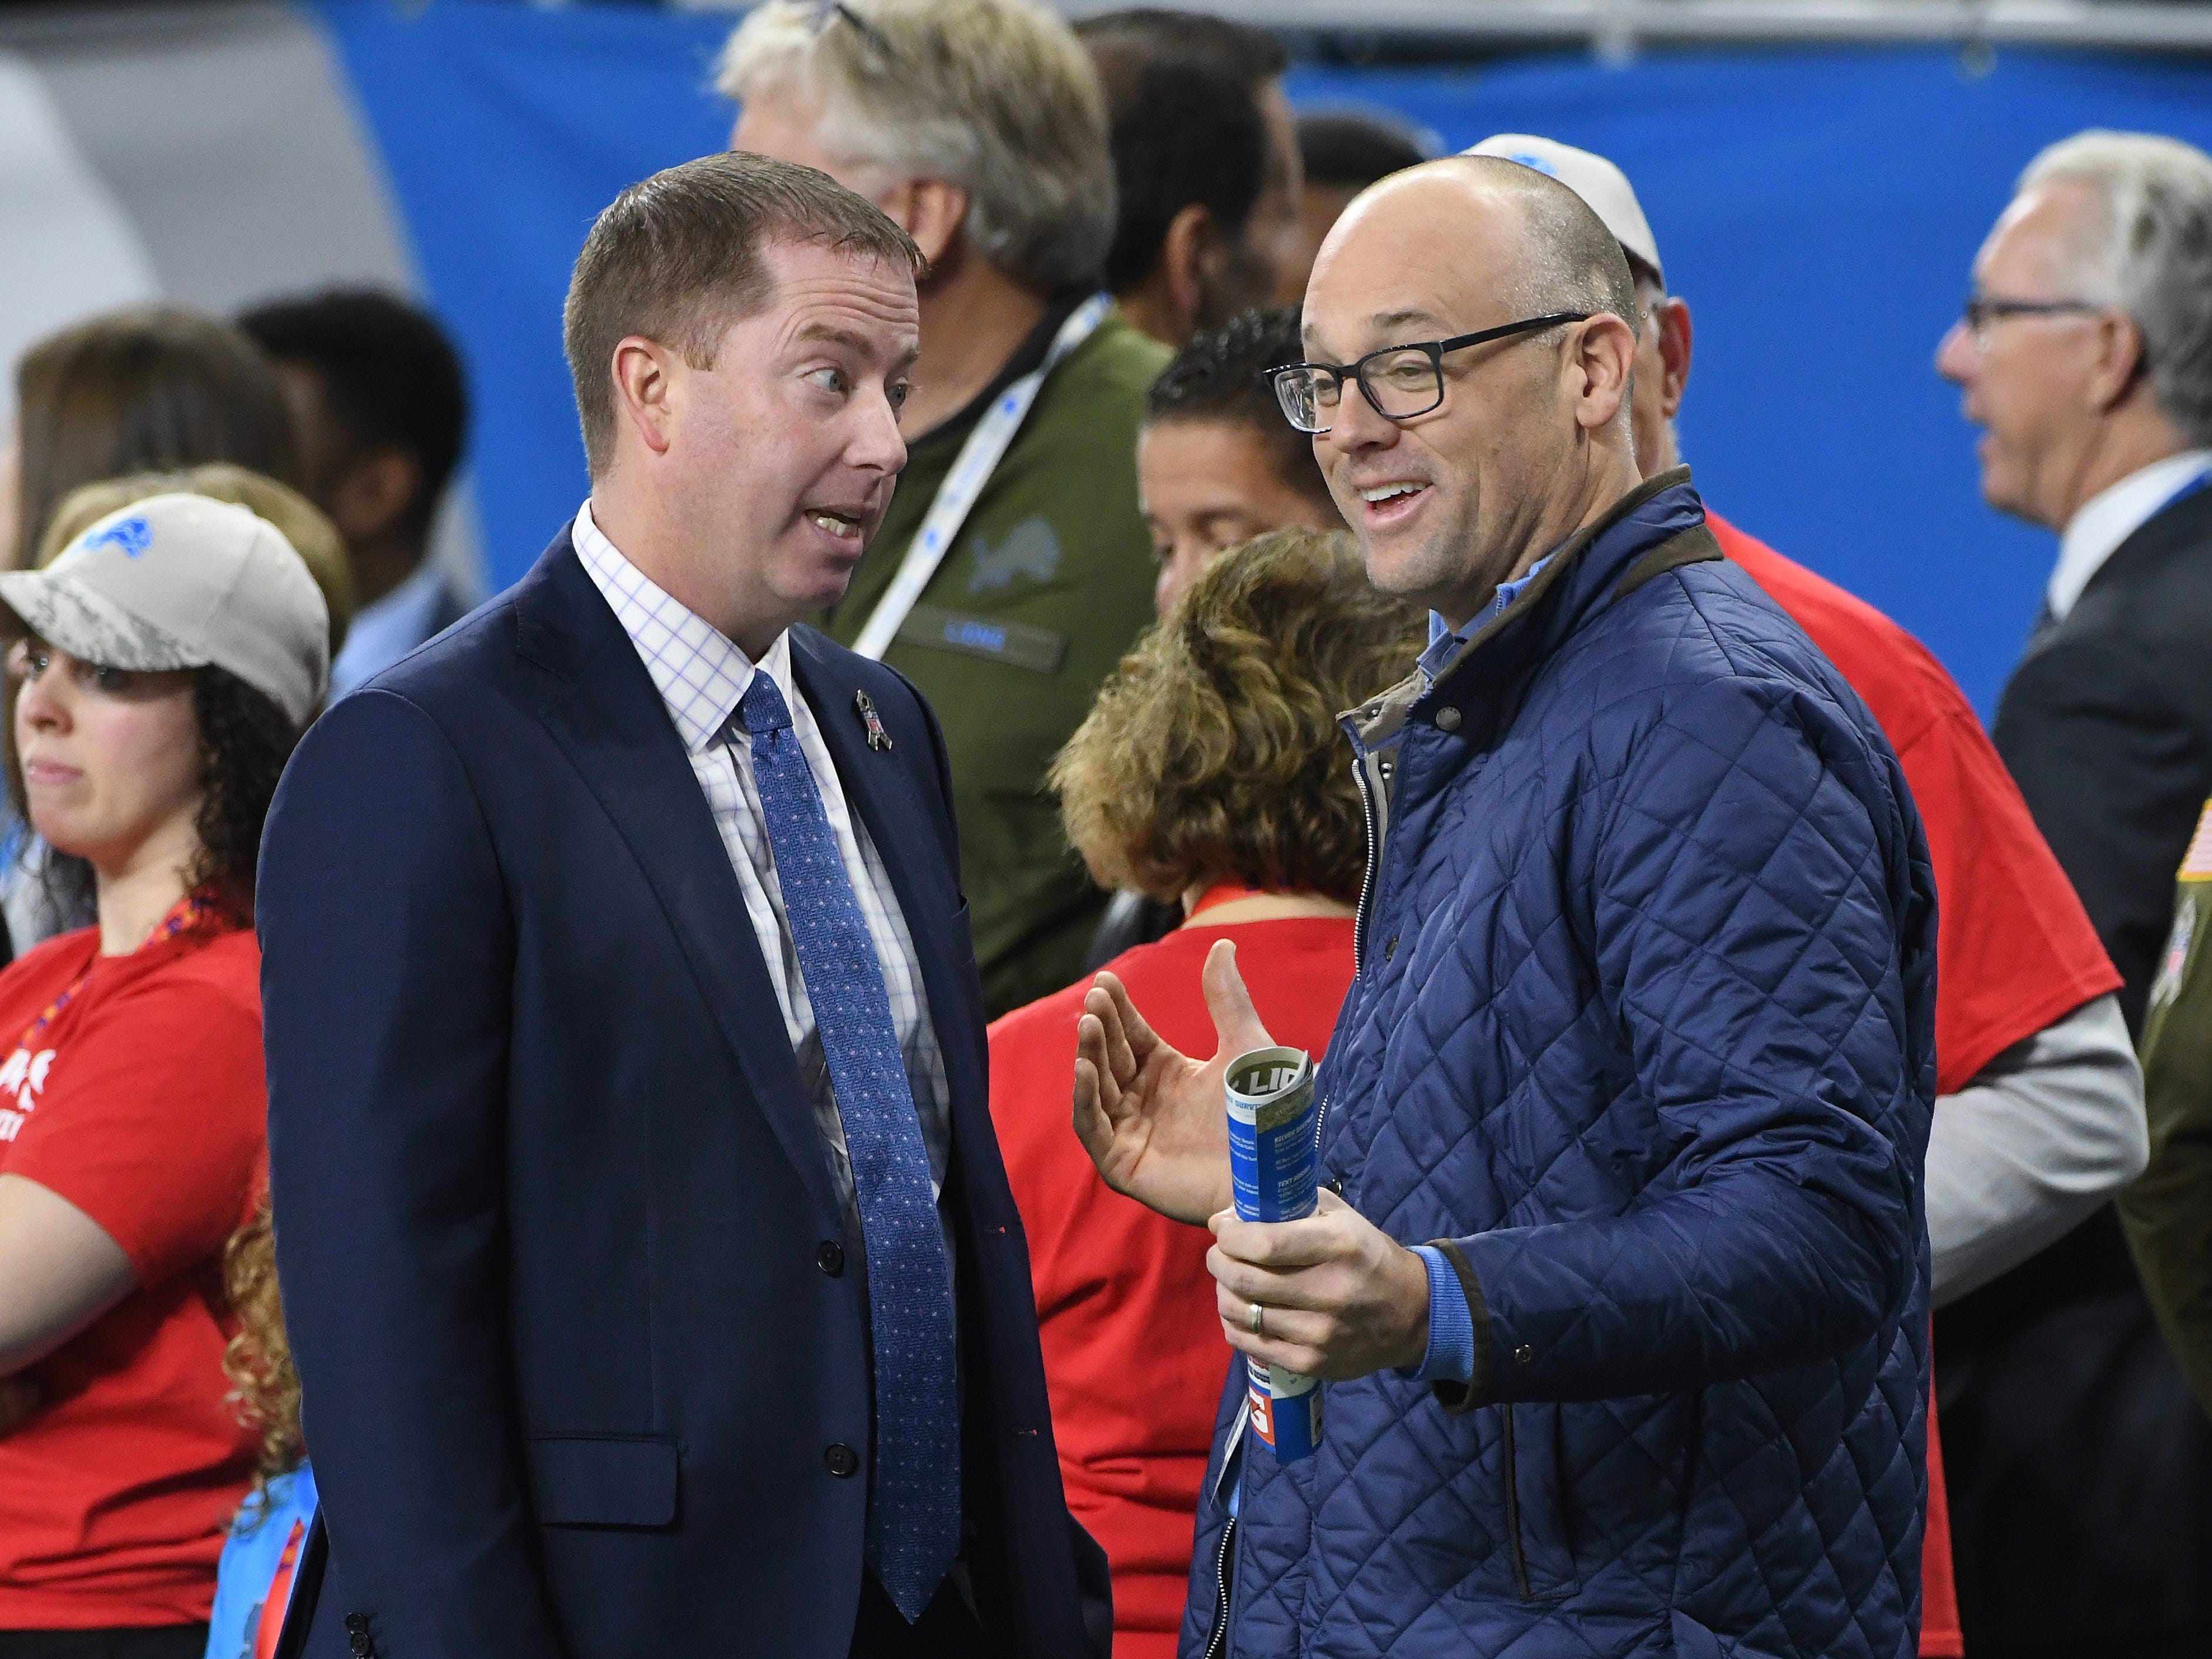 Lions general manager Bob Quinn and Detroit Red Wings coach Jeff Blashill chat on the sidelines during warm-ups before Detroit takes on Carolina at Ford Field.